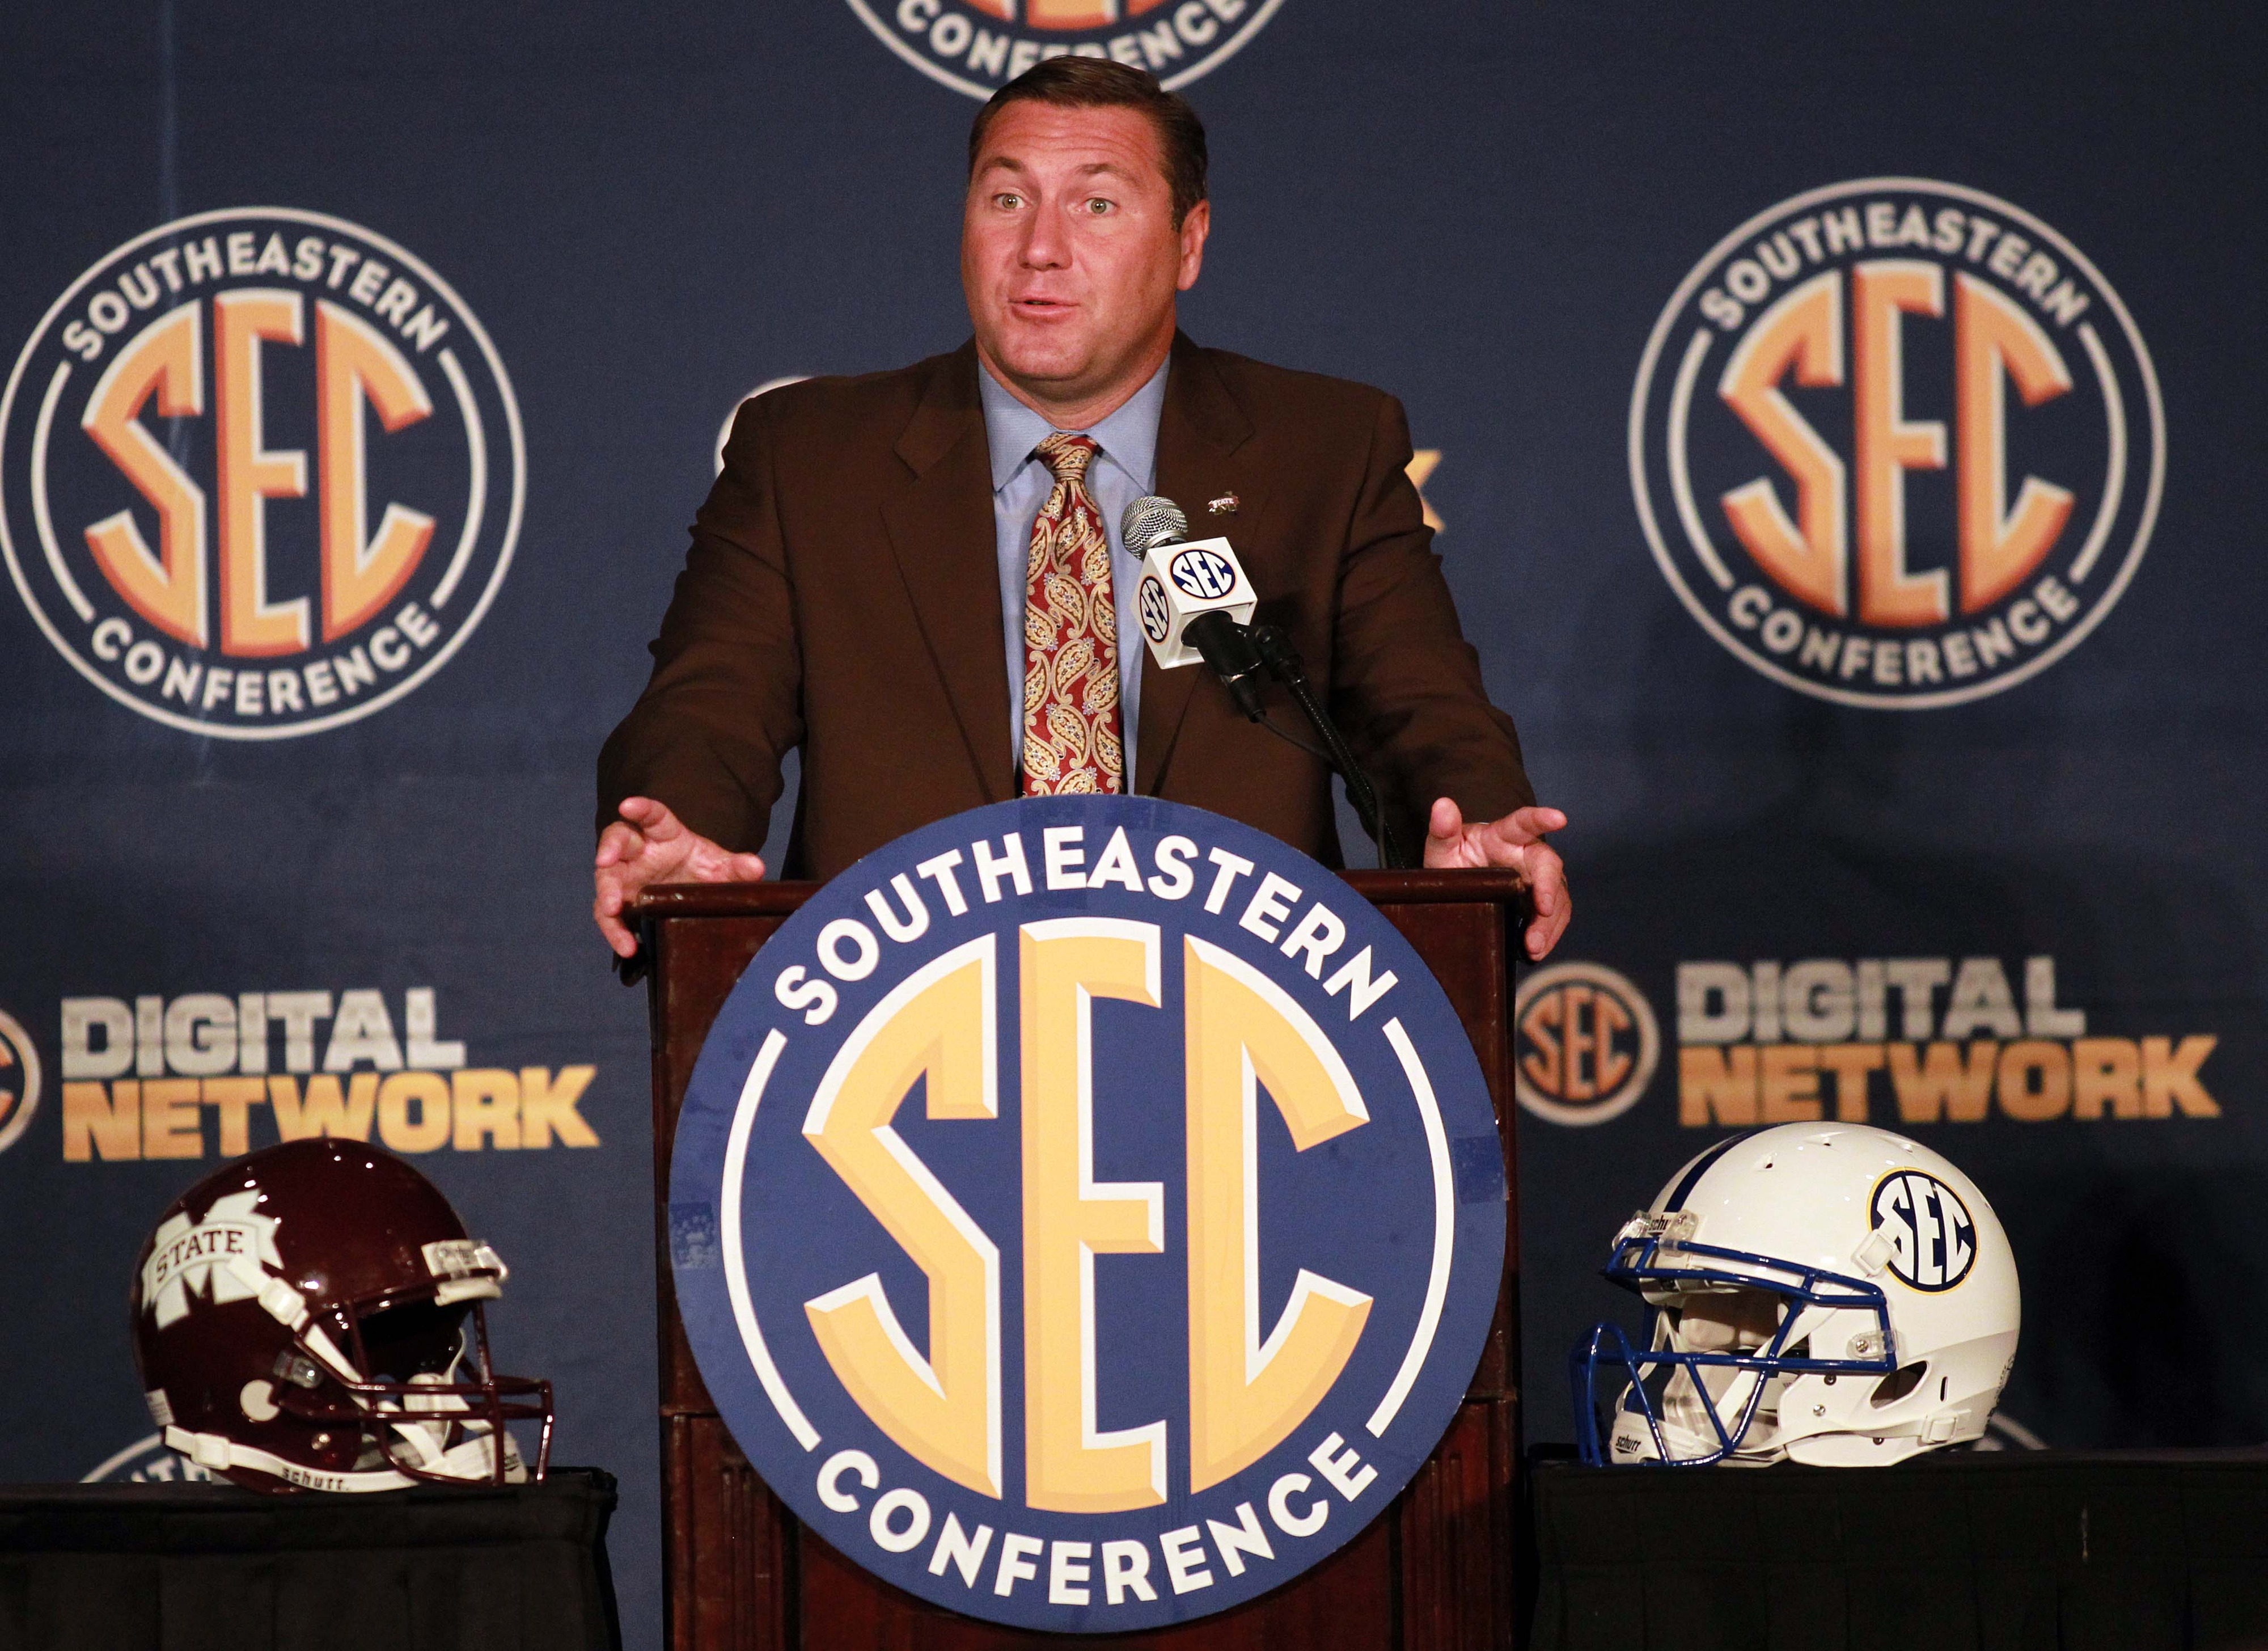 July 18, 2012; Hoover, AL, USA;  Mississippi State Bulldogs head coach Dan Mullen speaks during a press conference at the 2012 SEC media days event at the Wynfrey Hotel.   Mandatory Credit: Marvin Gentry-US PRESSWIRE